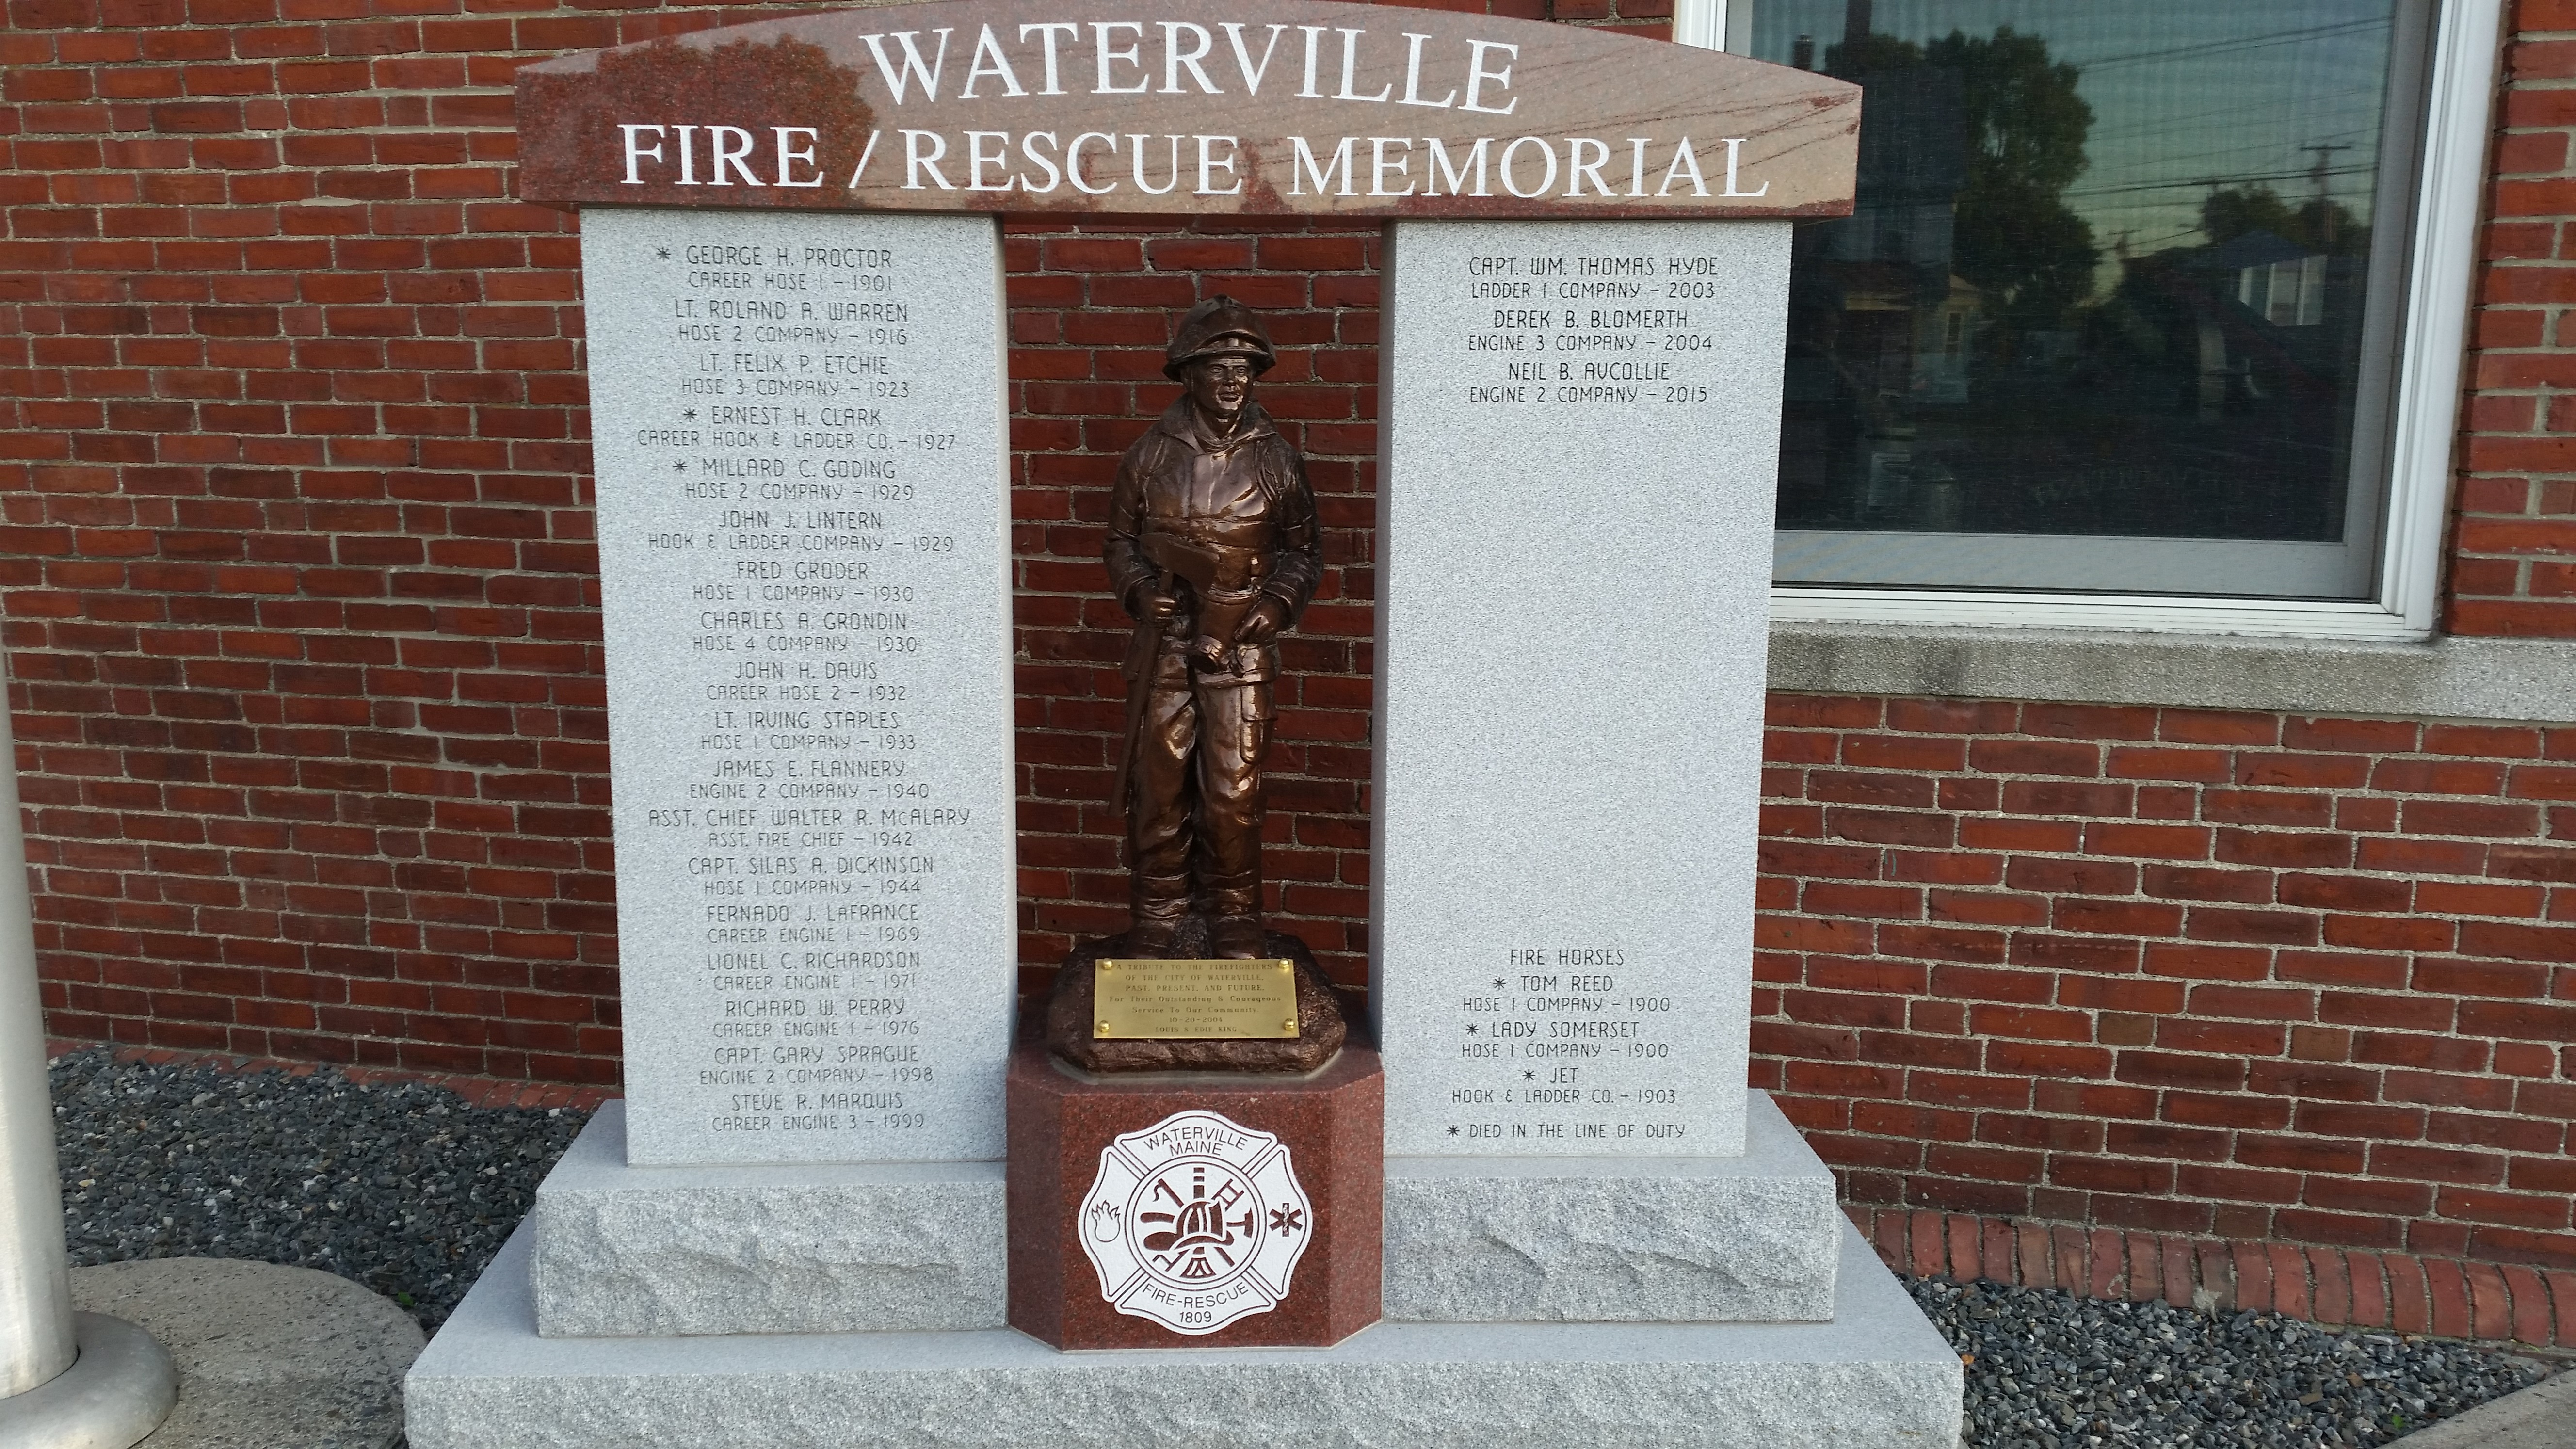 Picture of the Waterville Fire/Rescue Memorial